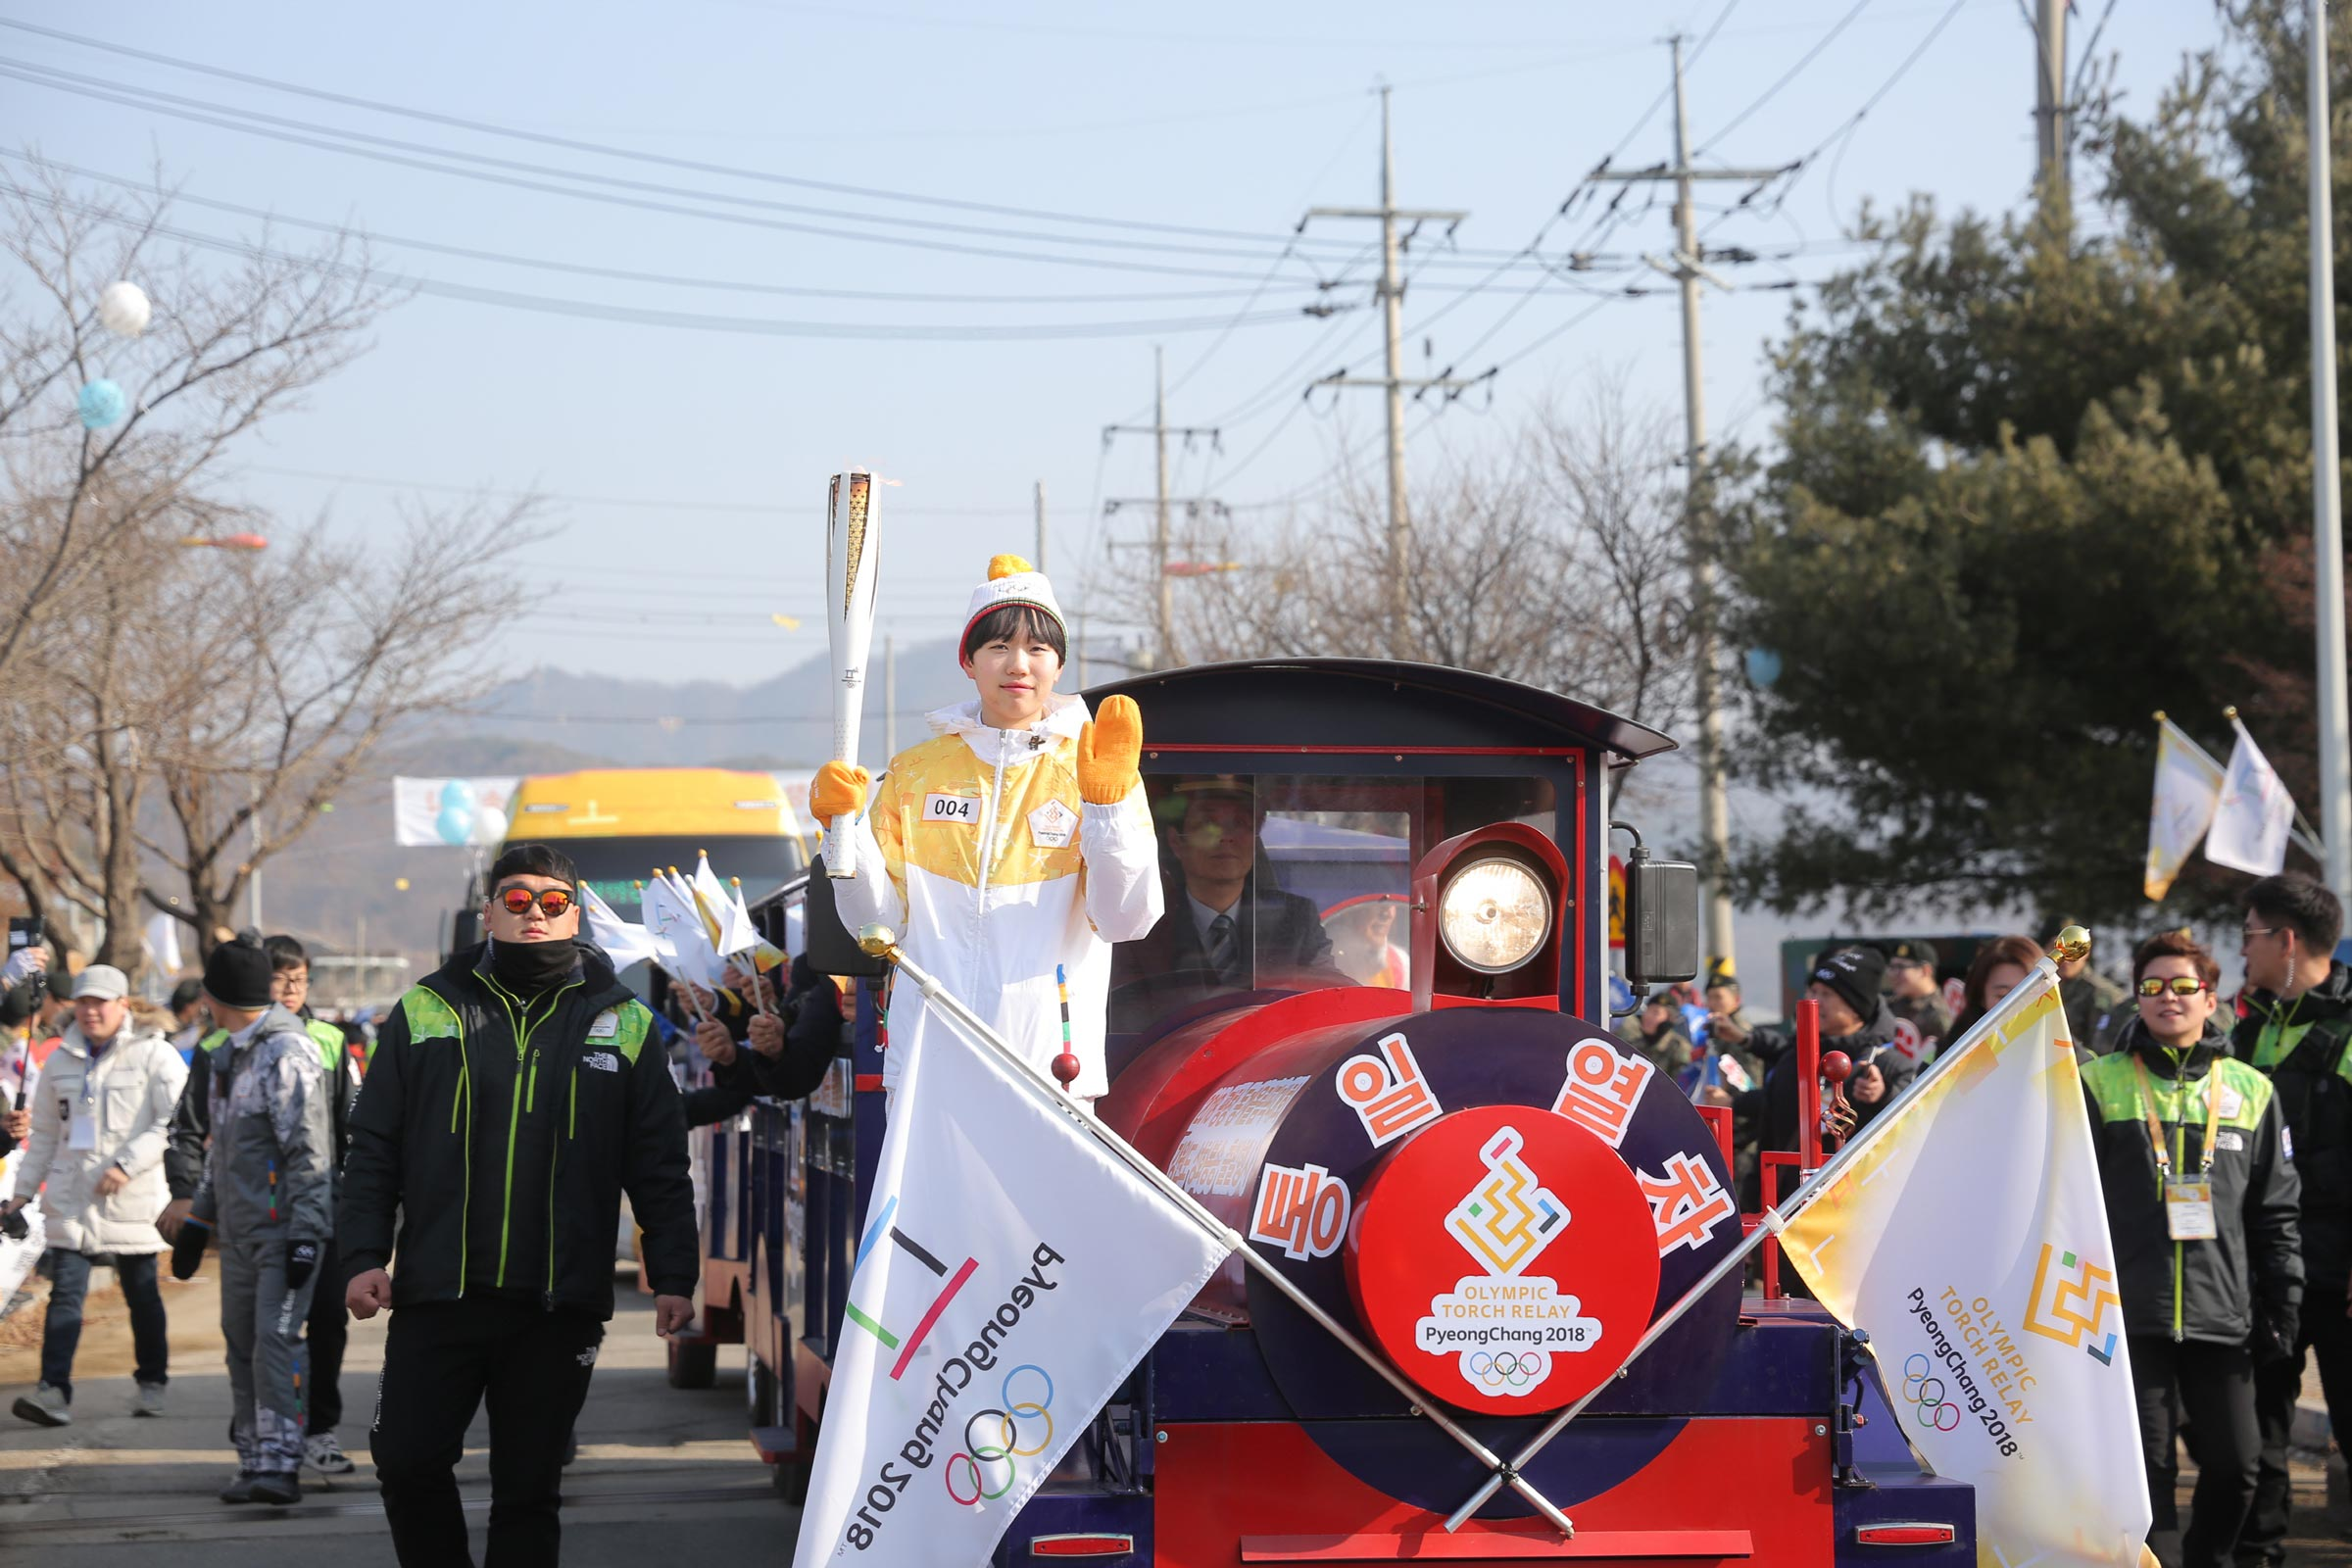 PyeongChang 2018 Olympic Torch Relay - Day 82